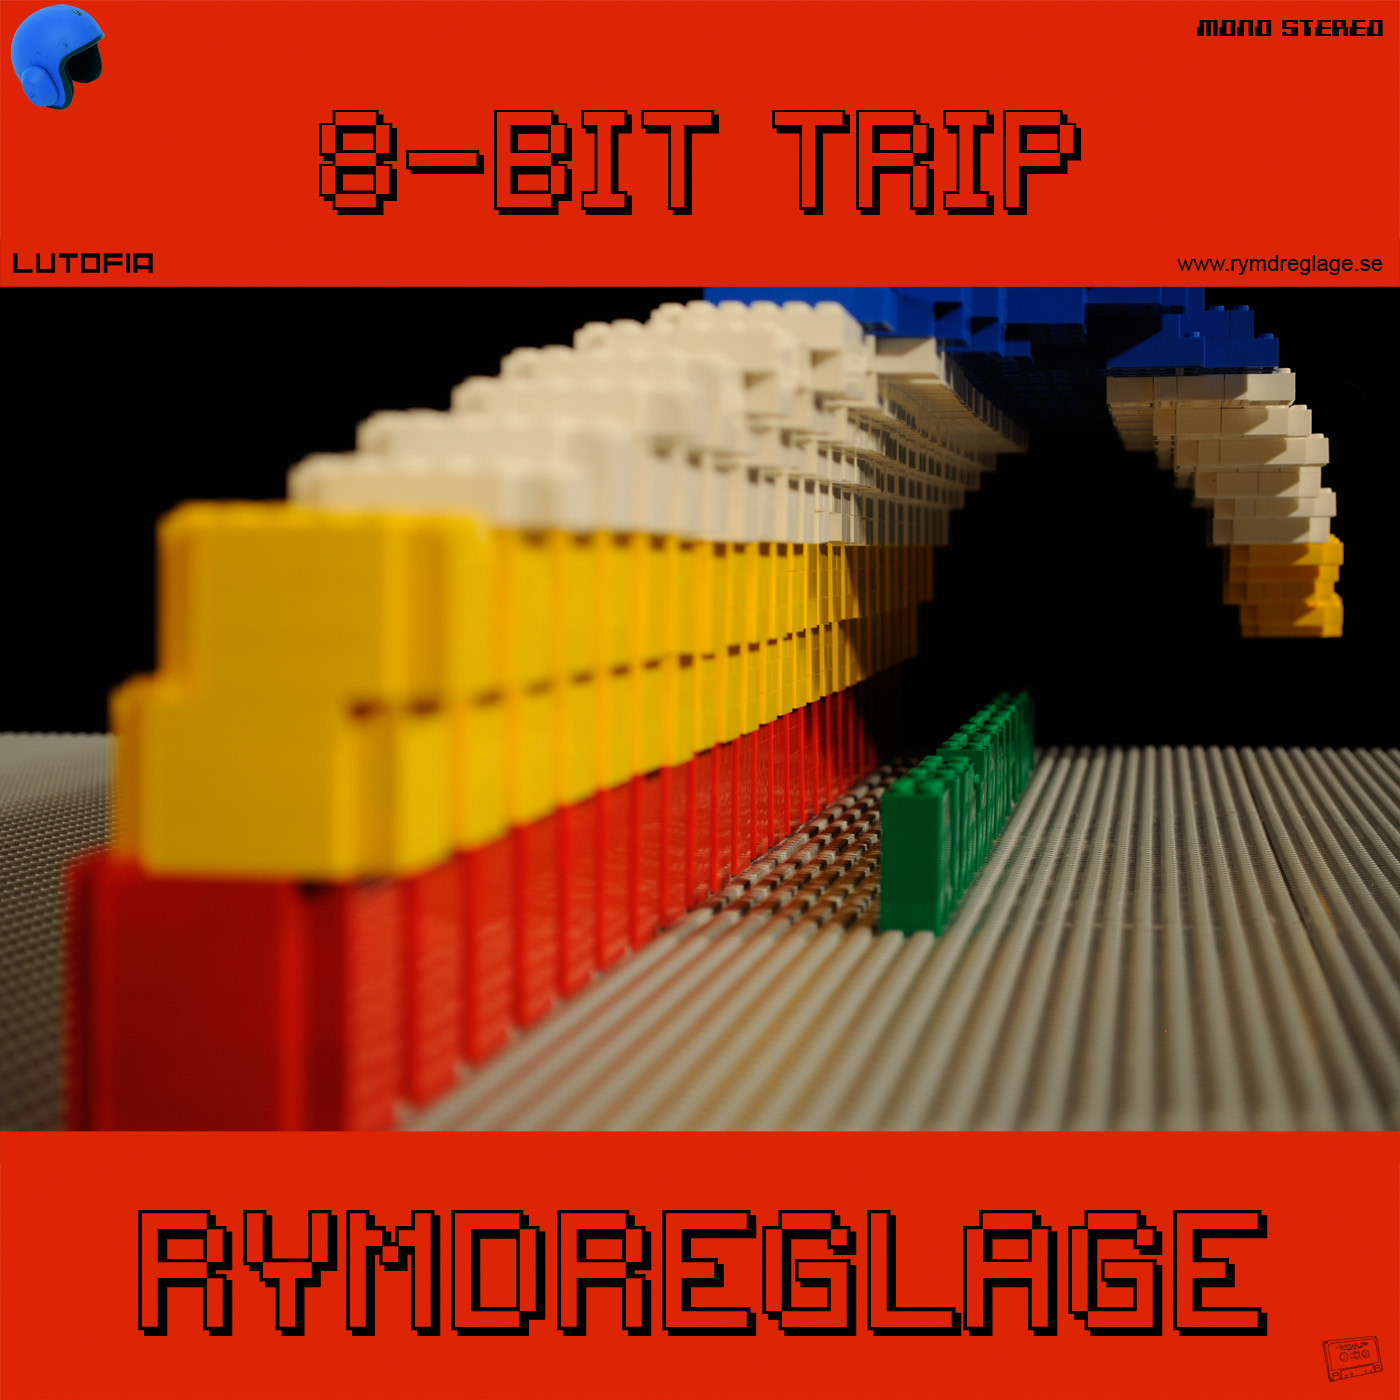 8-bit trip_to artspages